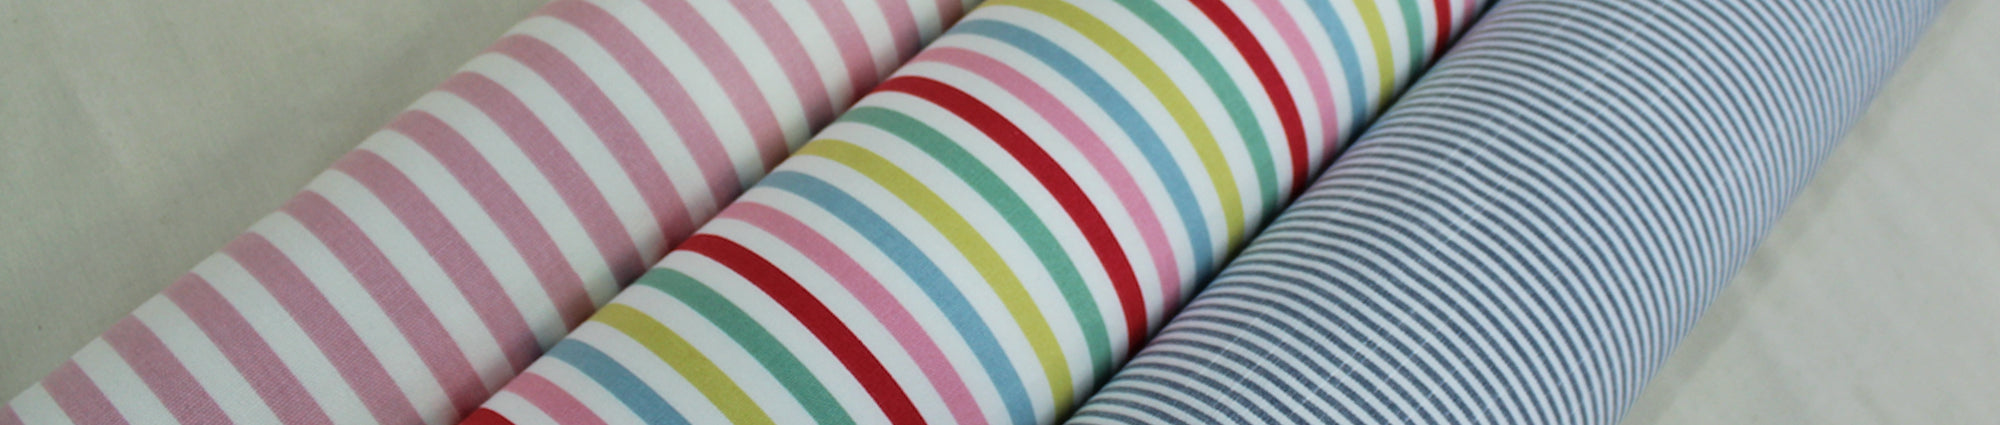 Striped Furnishing Fabric